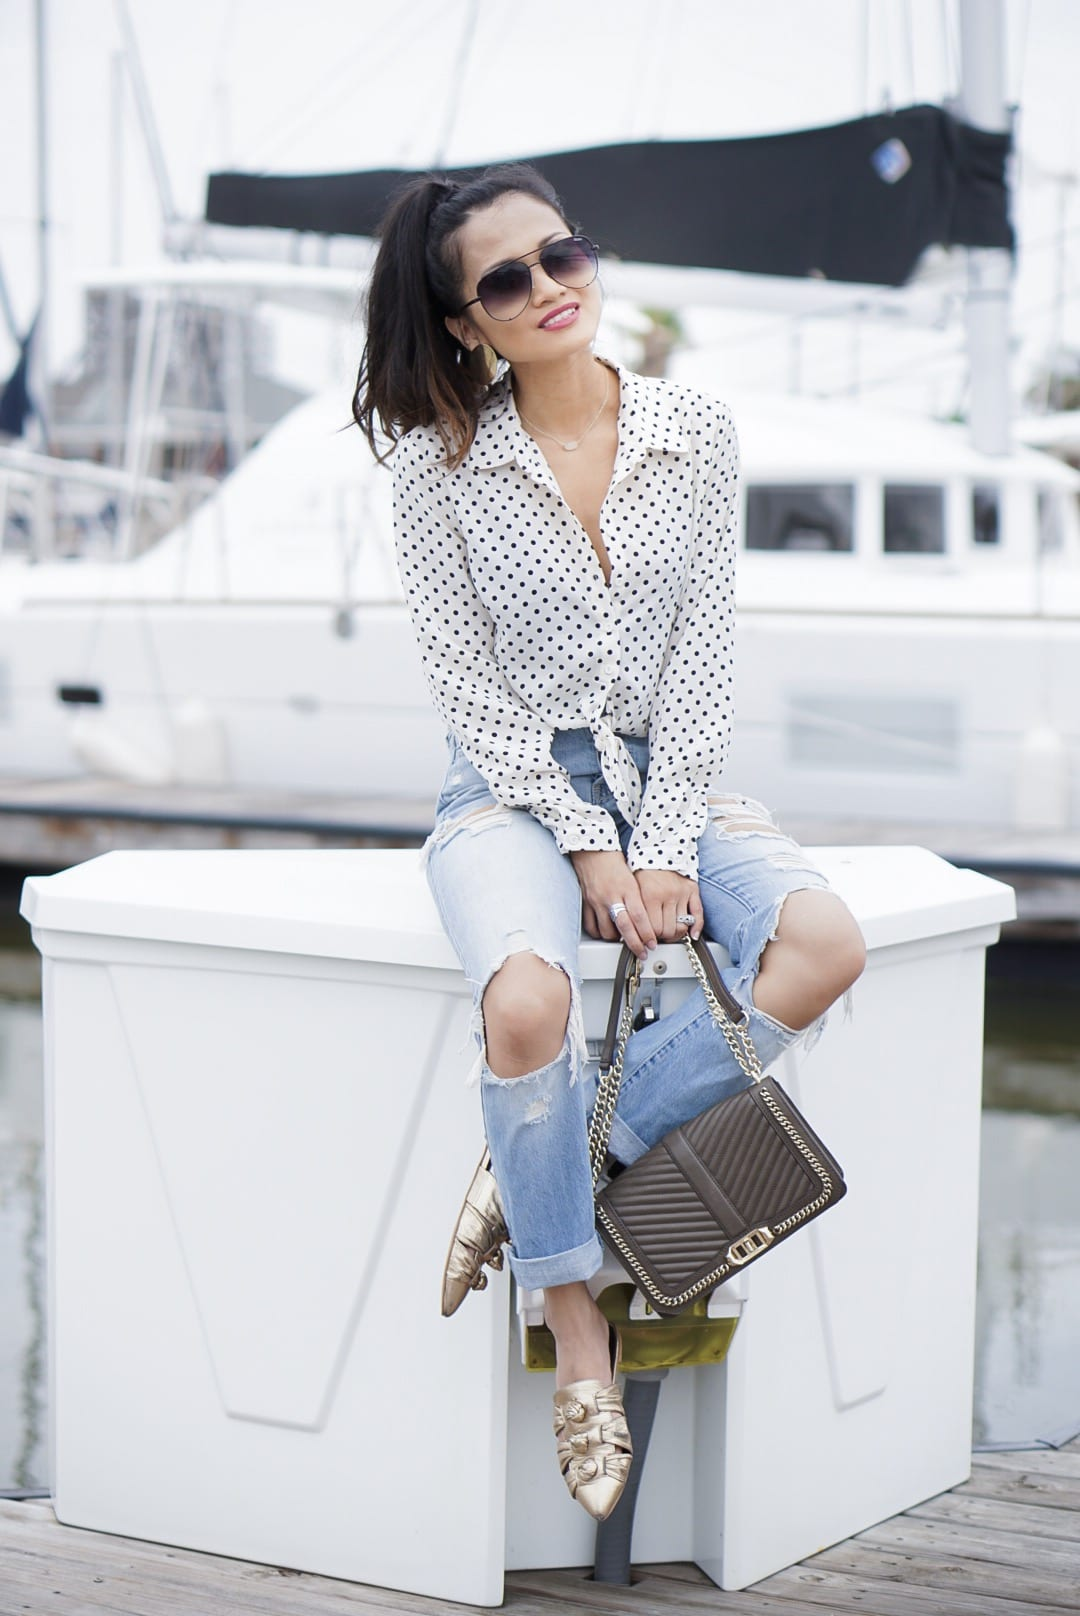 coping tips, dealing with a tragedy, dealing with grief, mom guilt, #polkadot #summerstyle, quay sunglasses, #momstyle, Rebecca Minkoff shoes, gold mules, Rebecca Minkoff love crossbody, quay sunglasses, ripped ankle jeans, mom jeans, high waisted jeans